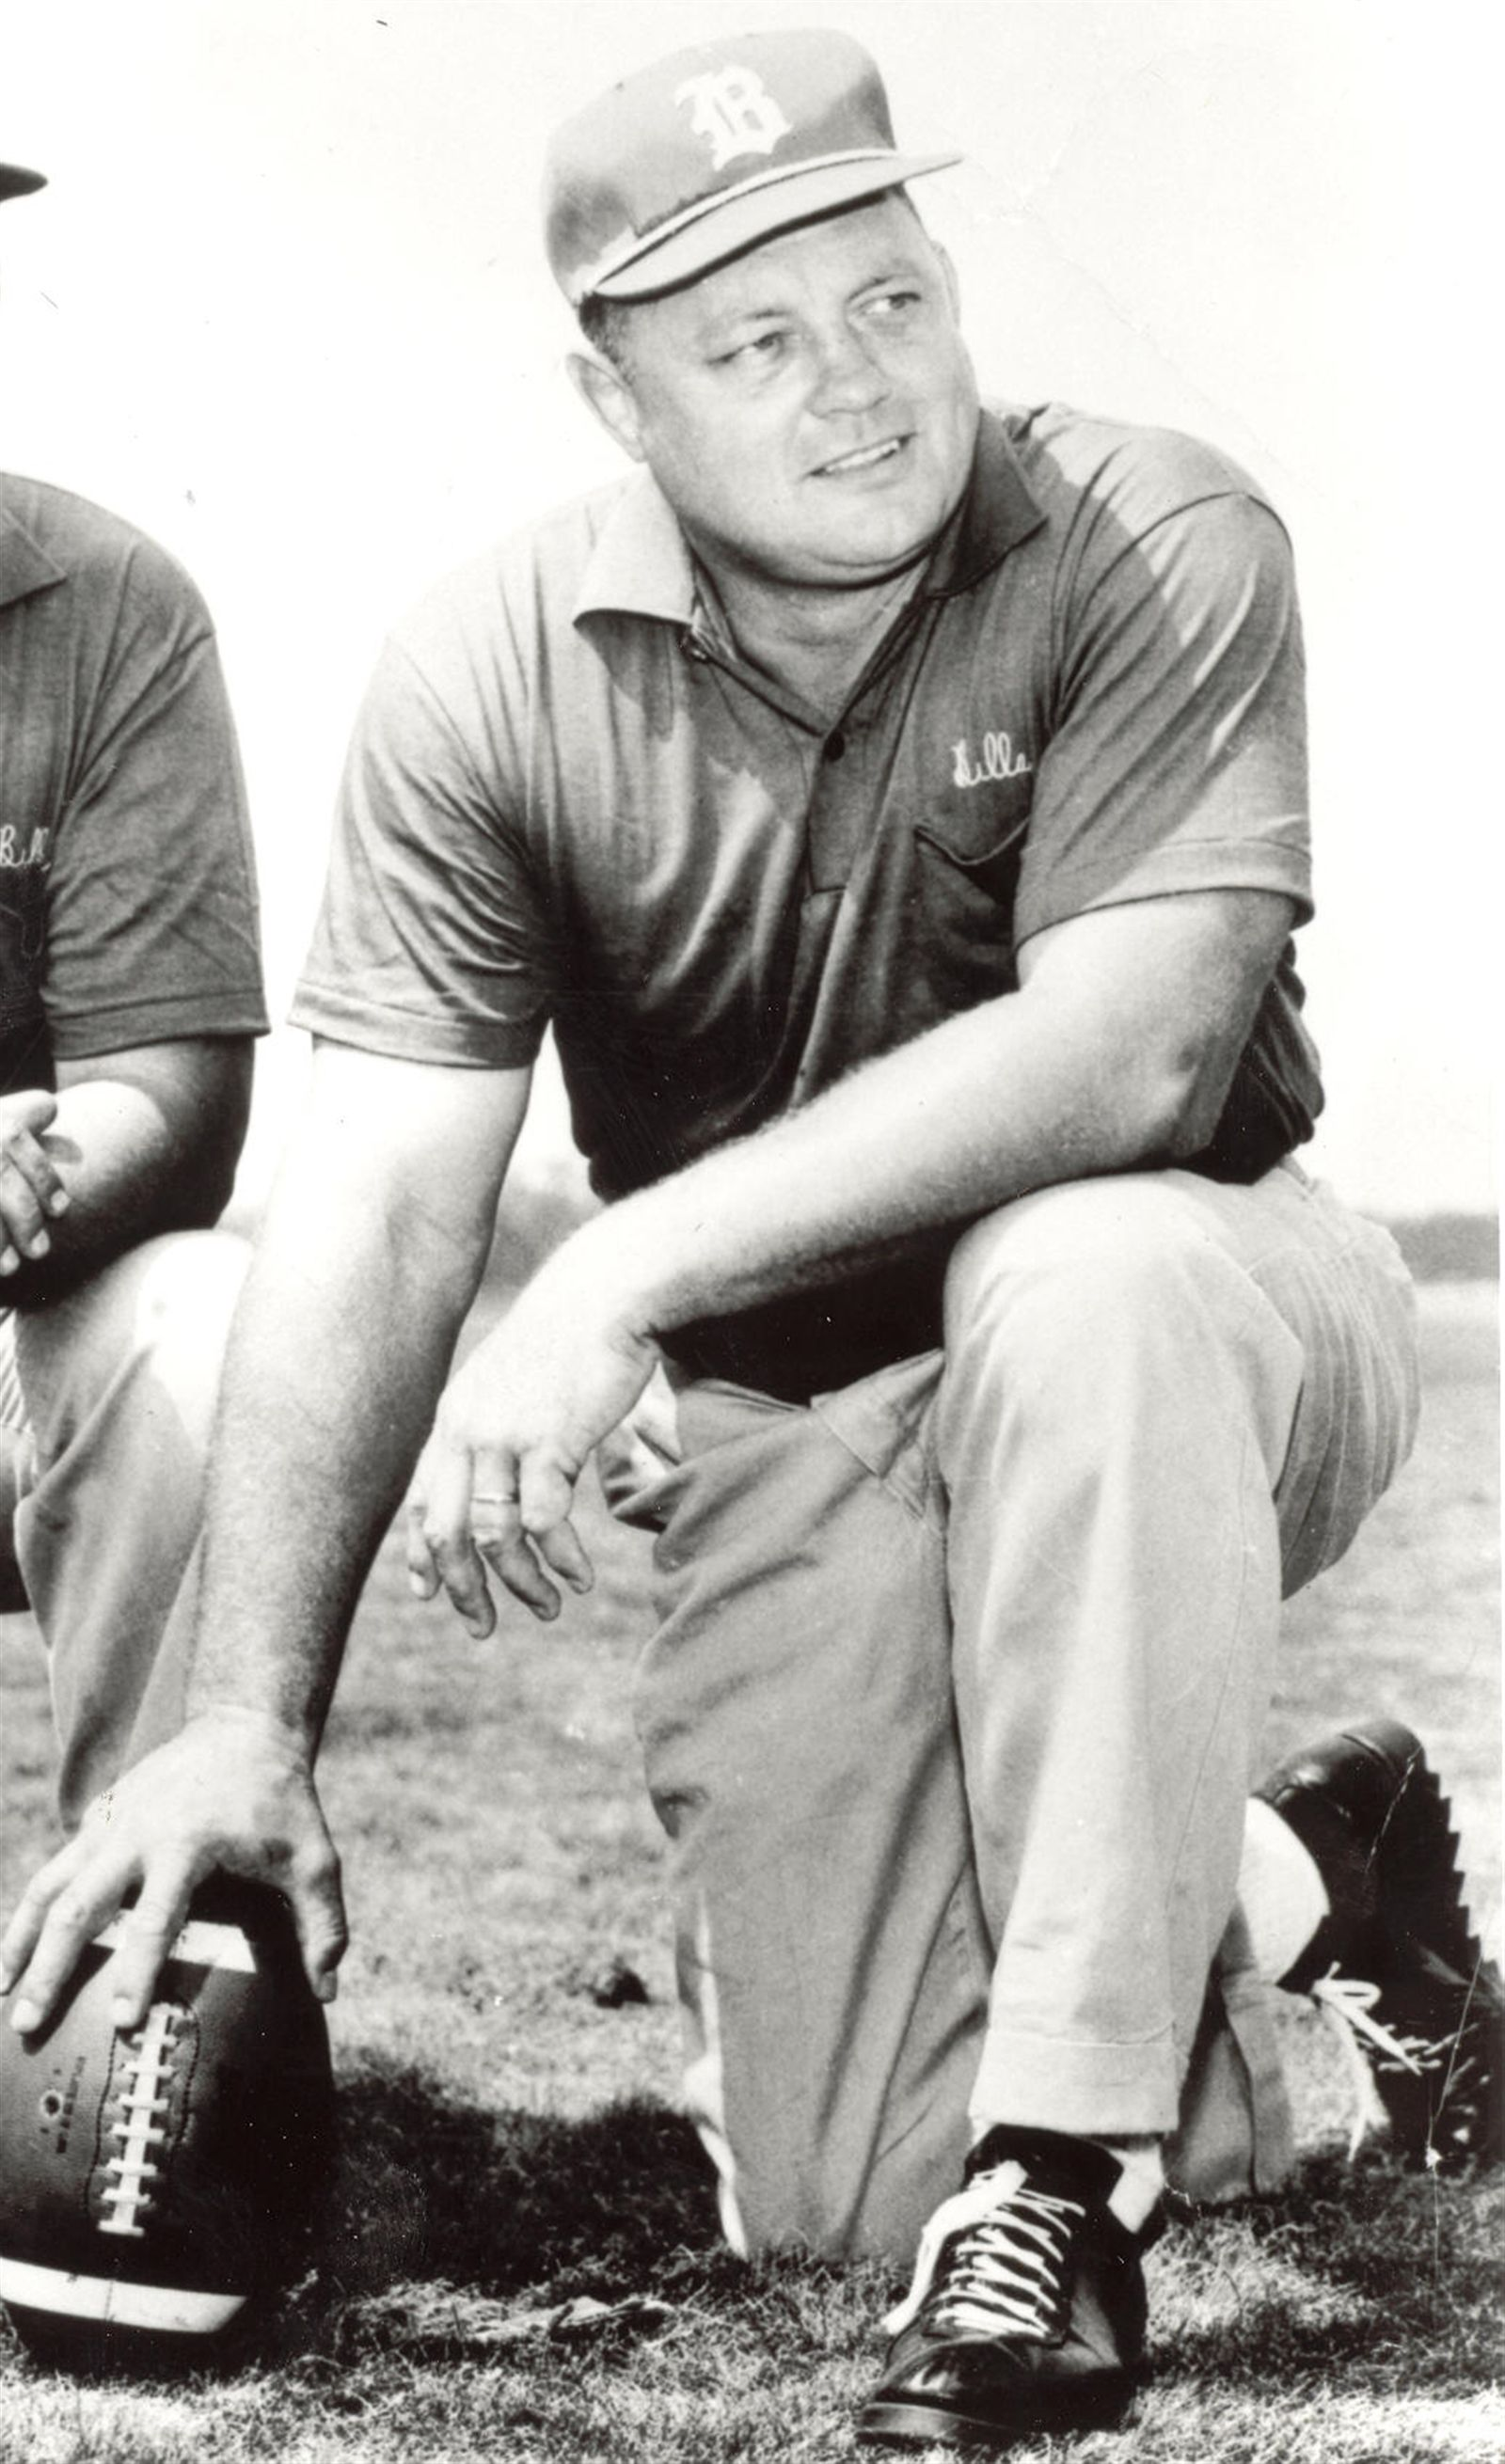 Buster Ramsey. Years: 1960-61. Record: 11-16-1. Ramsey was the first coach Ralph Wilson hired to lead his Bills. Ramsey was a top player with the Chicago Cardinals, being named to the NFLu2019s All-Decade Team for the 1940s, but had less success as a coach, lasting only two seasons. Ramsey, however, is credited with being instrumental in the creation of the 4-3 defense and the linebacker blitz. He is also credited with designing the Billsu2019 original uniforms.